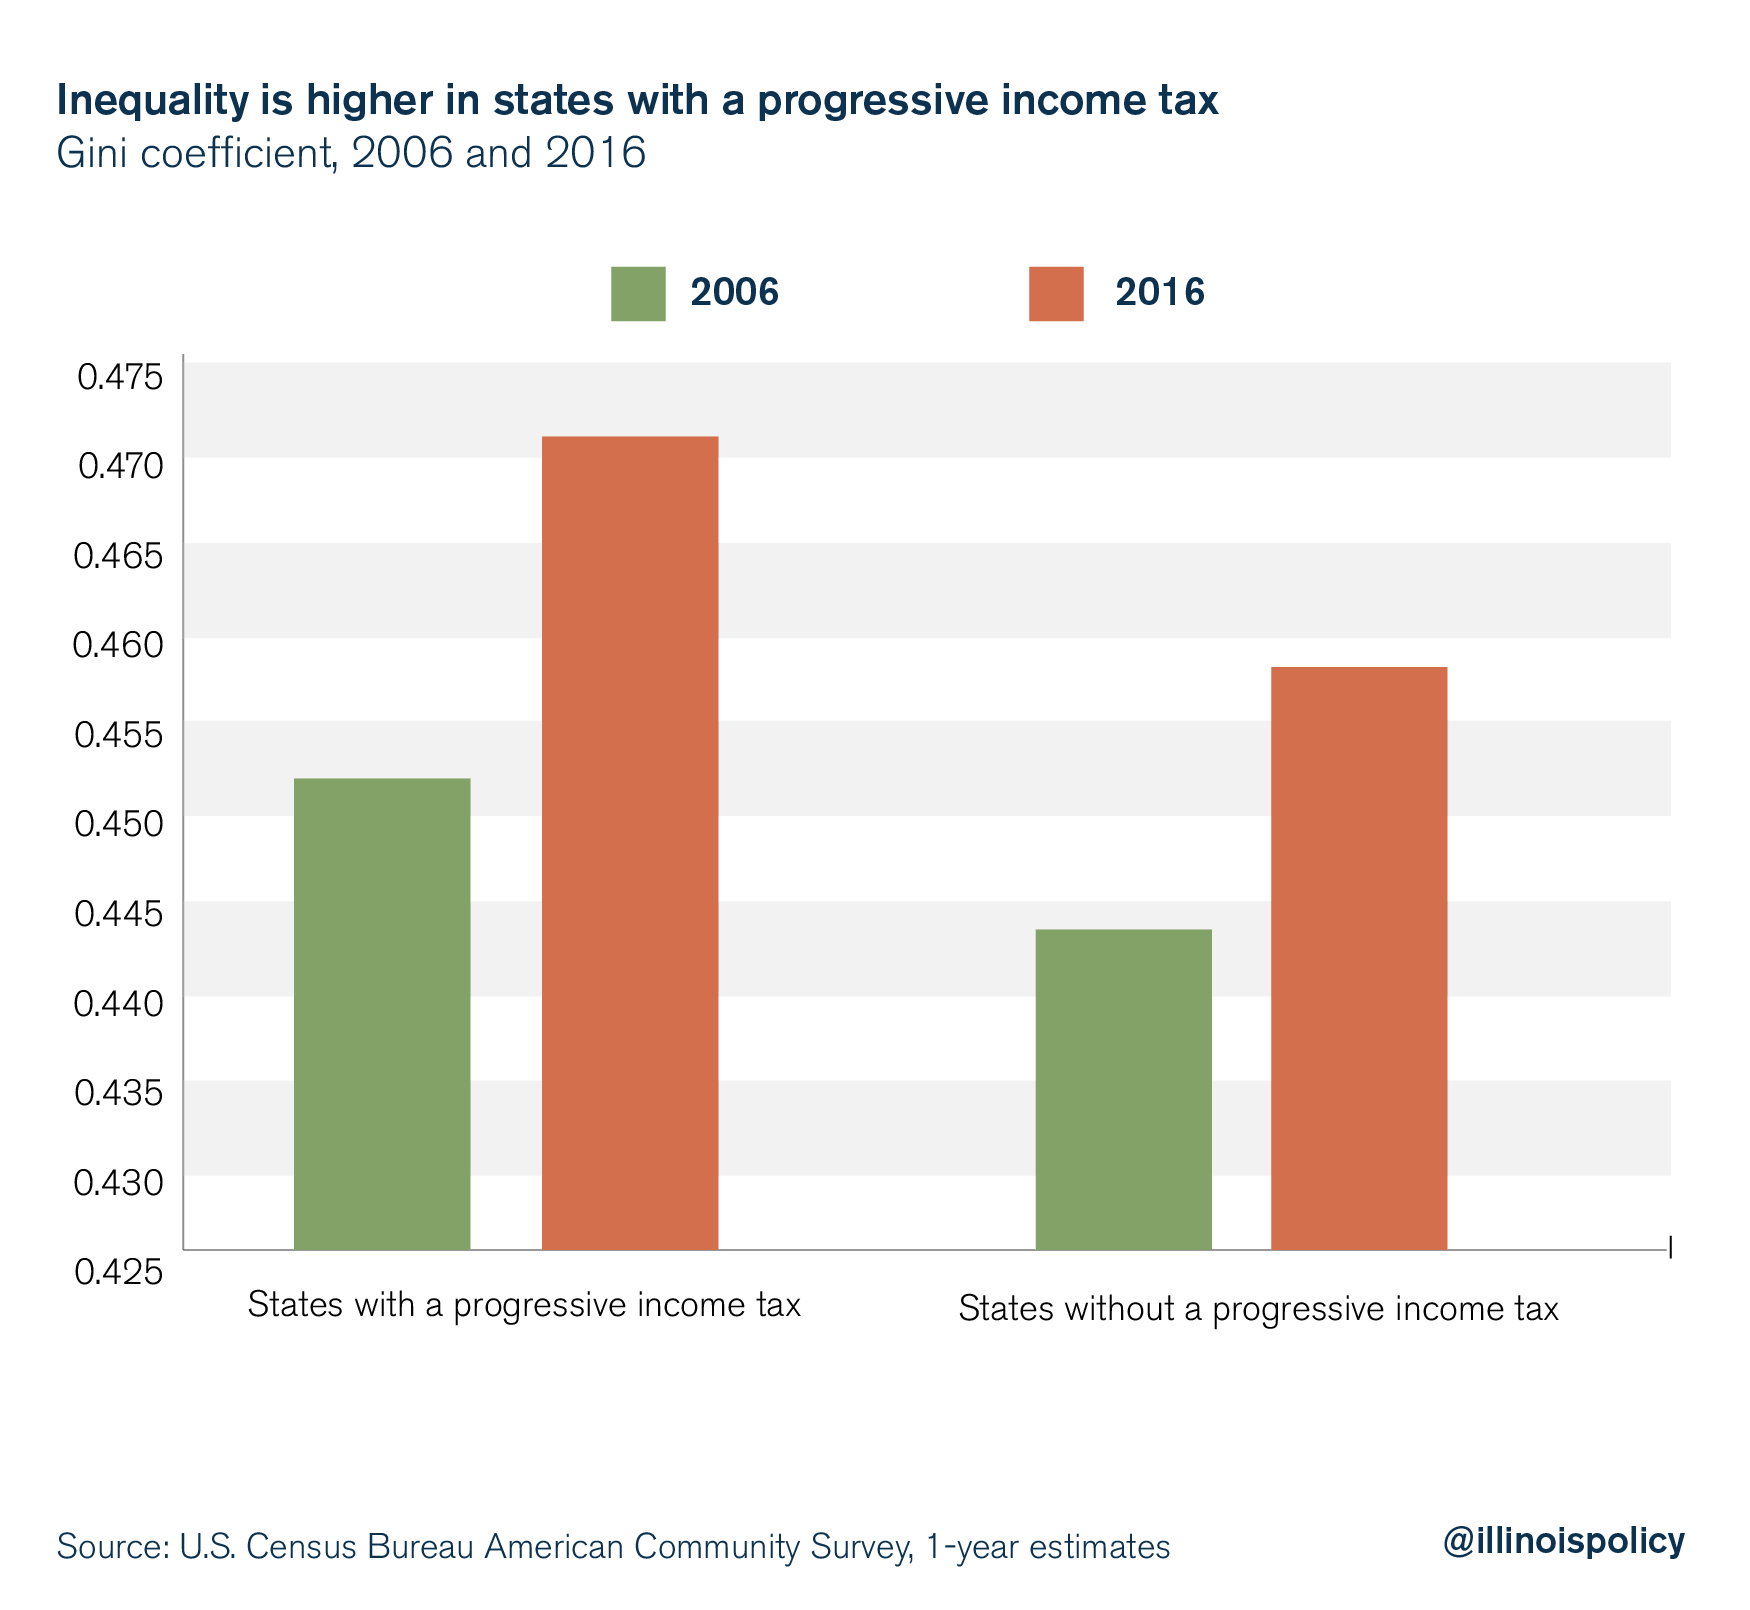 inequality is higher in states with a progressive income tax